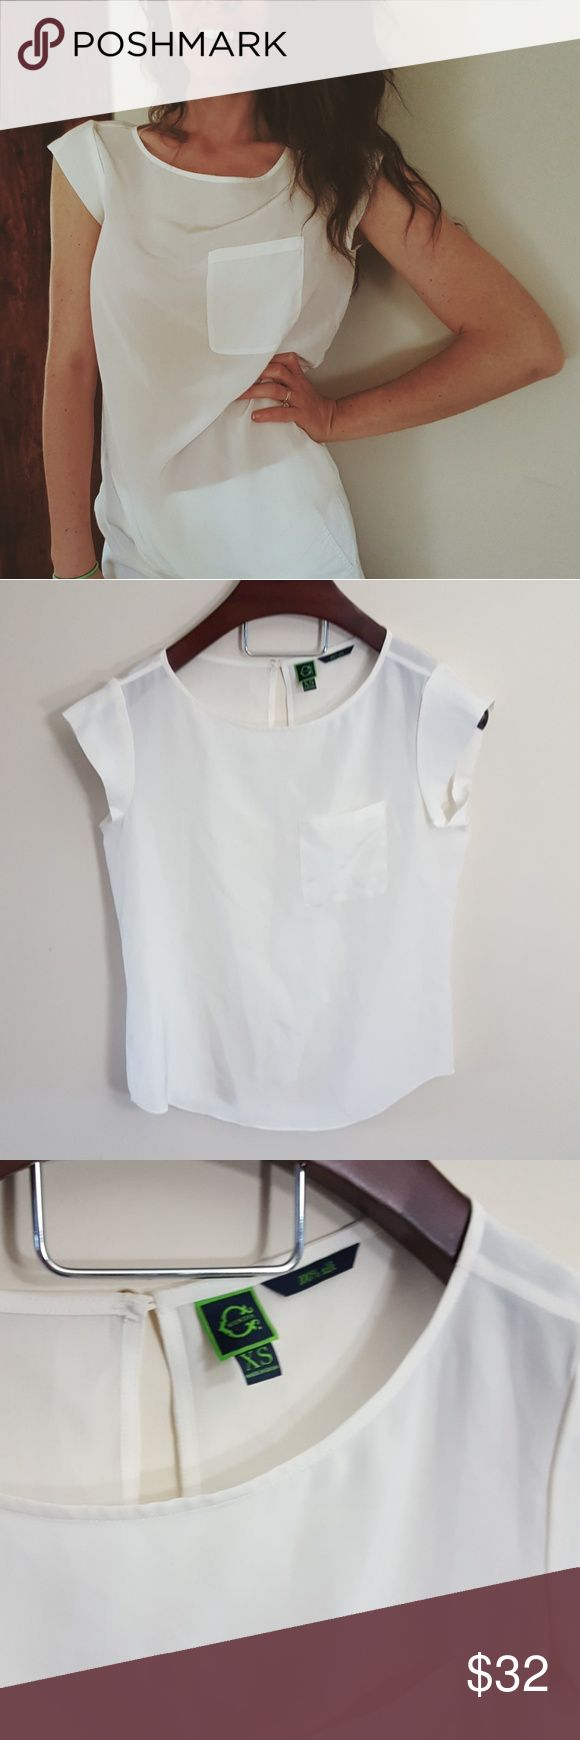 C Wonder | 100% silk top |XS In good condition! C Wonder 100% silk top, size XS. Very loose fit. Large pocket detail. Cream white color. Could fit a small.  Bundle up! Offers always welcome:) Tops